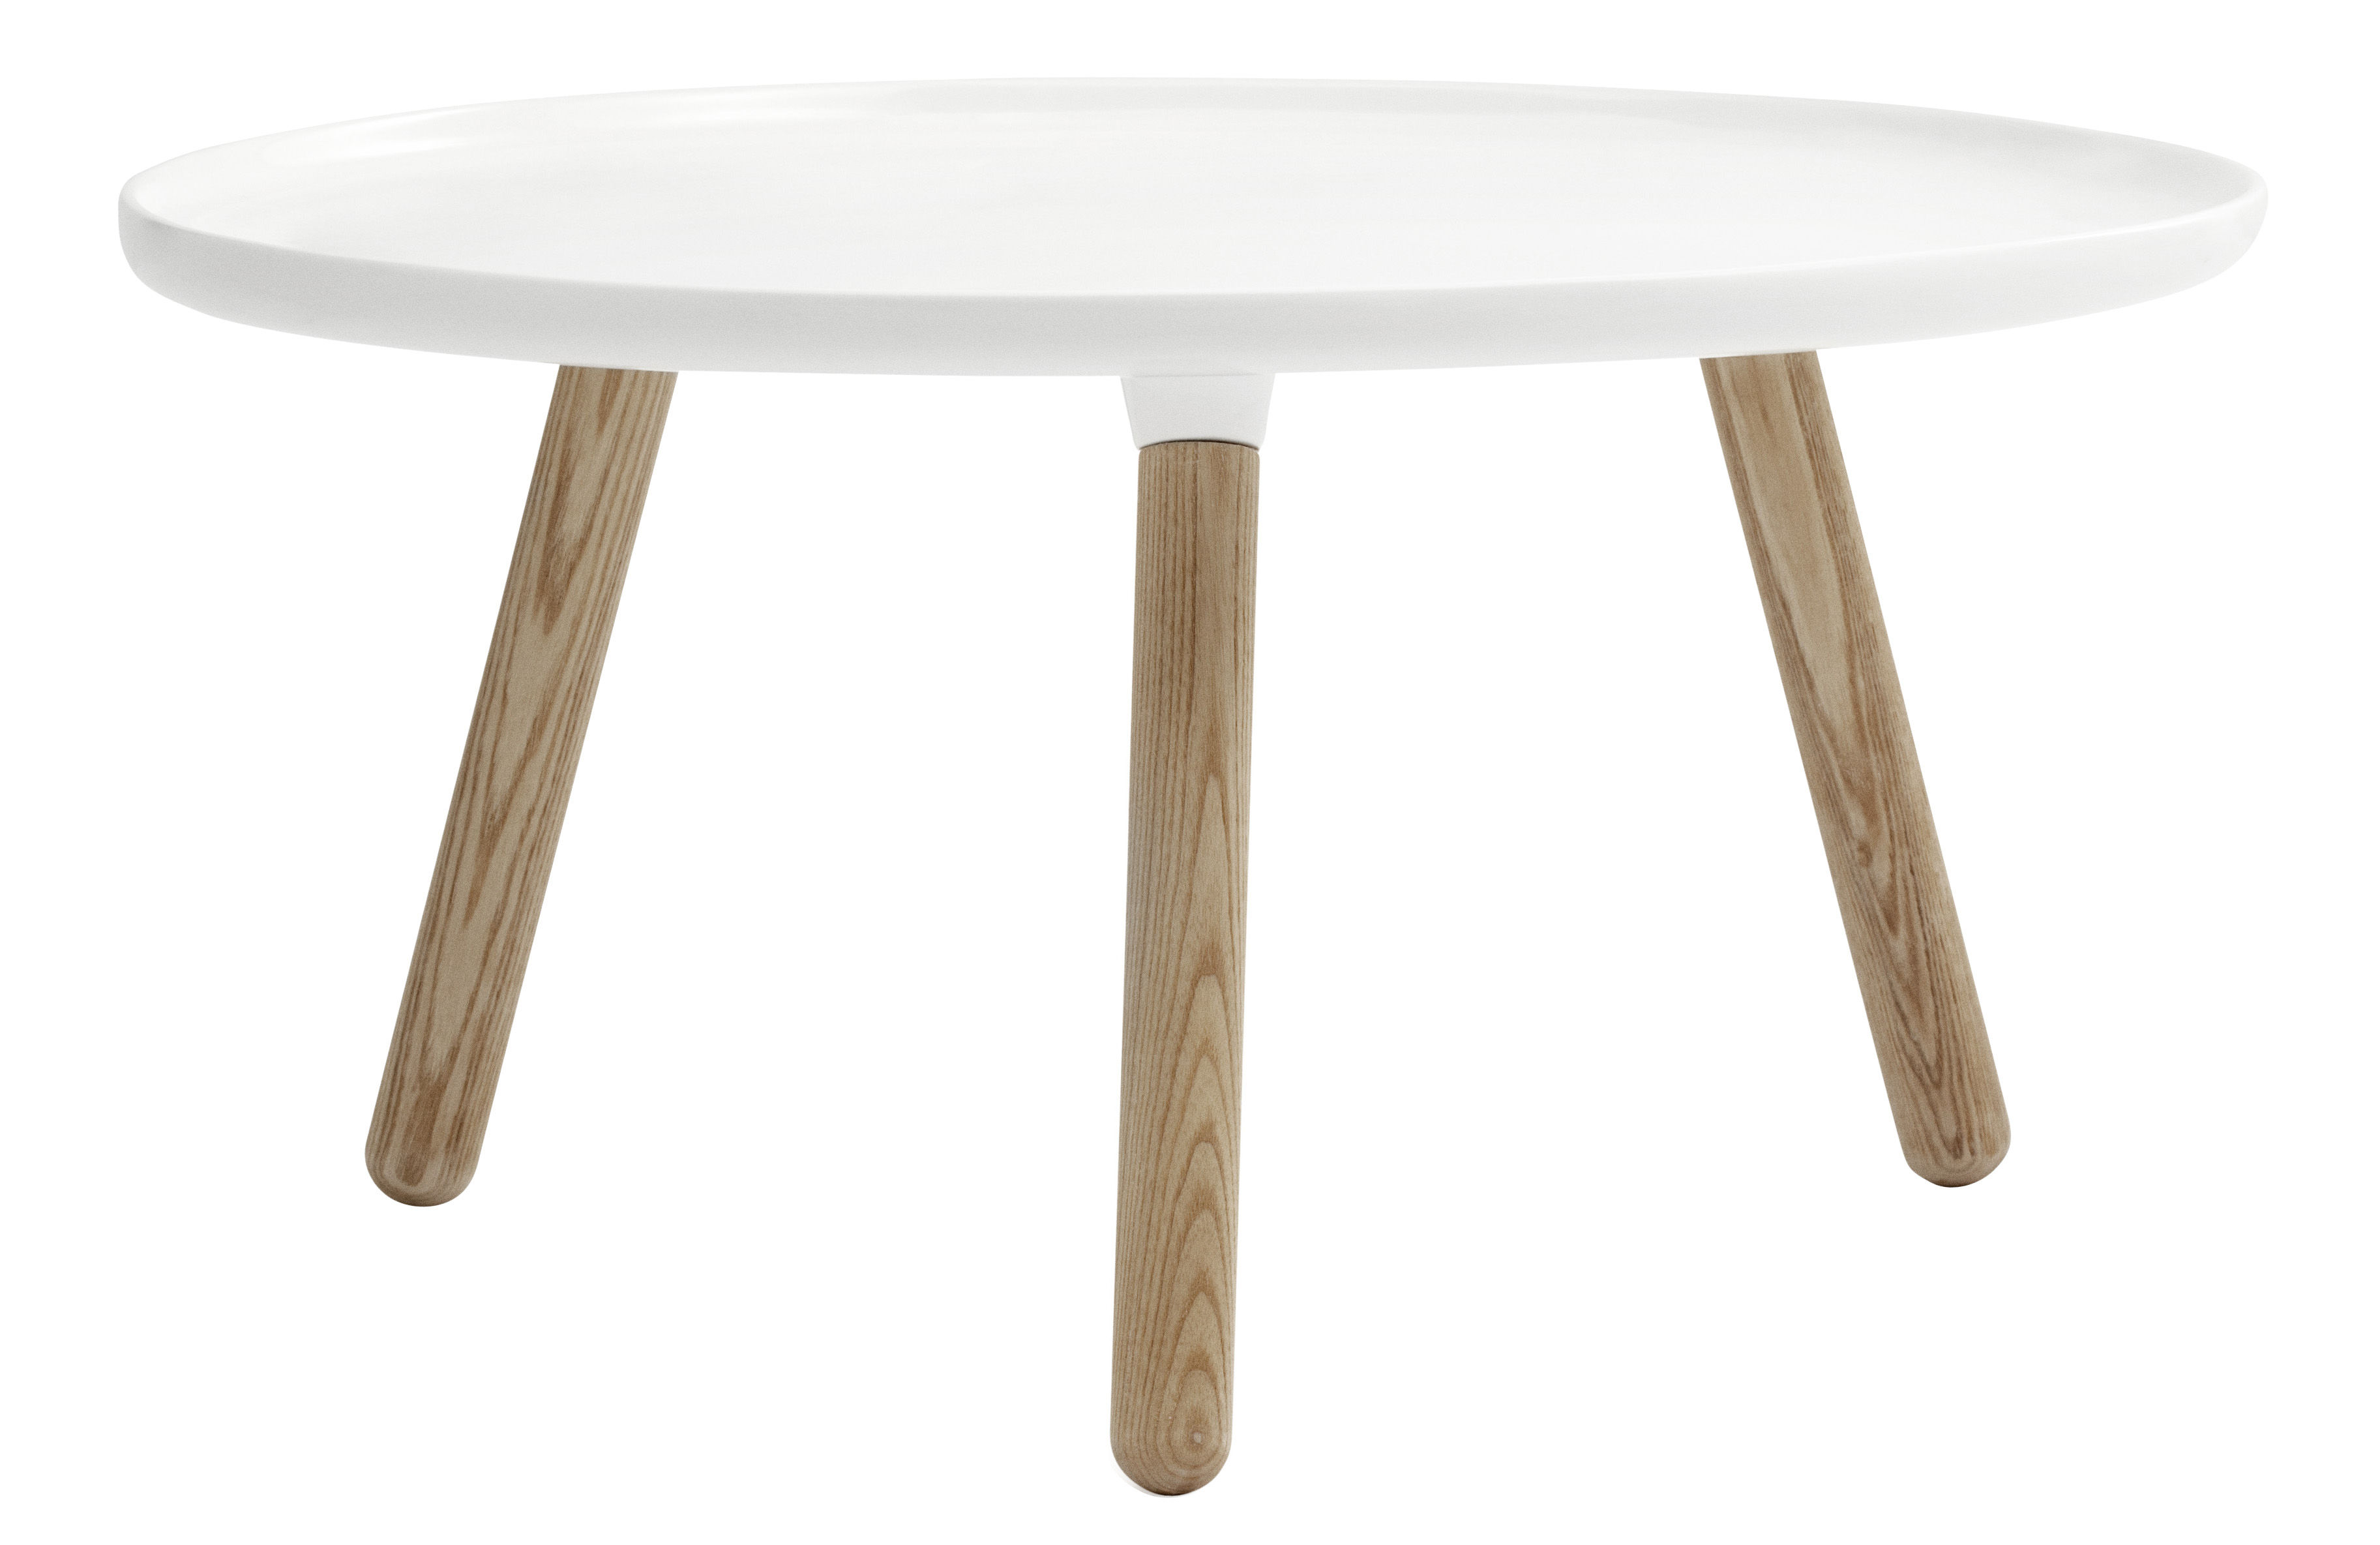 Furniture - Coffee Tables - Tablo Large Coffee table - Ø 78 cm by Normann Copenhagen - White - Composite material, Natural ash